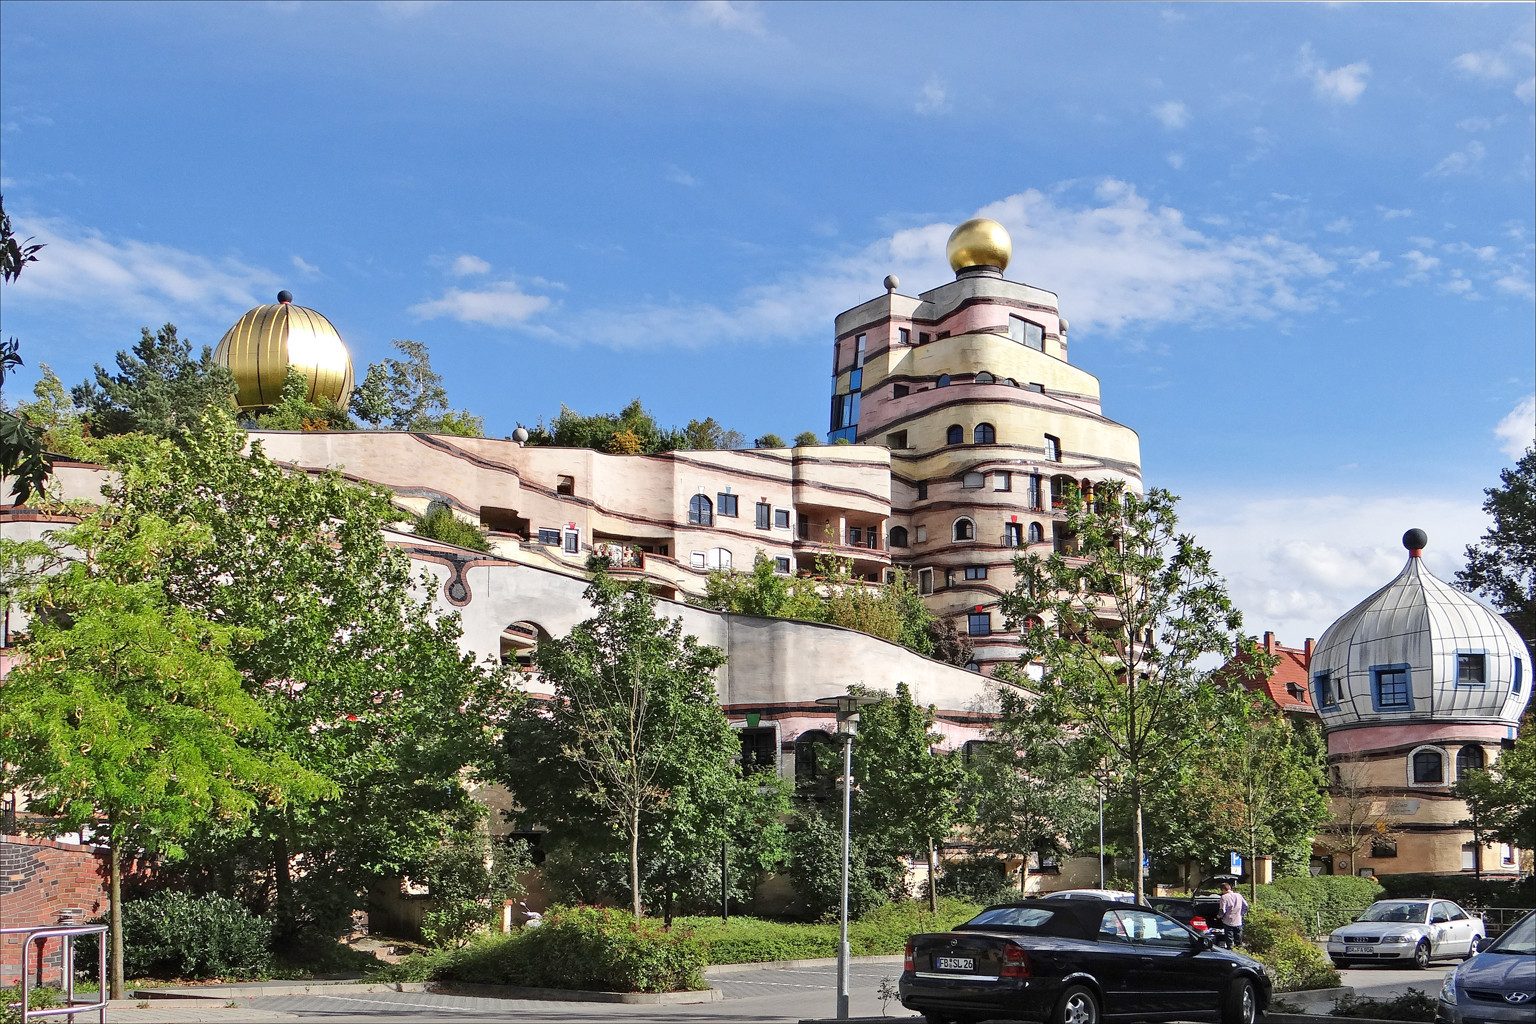 Küchenmeister Darmstadt Darmstadt ~ these are 18 of the world's strangest buildings archdaily